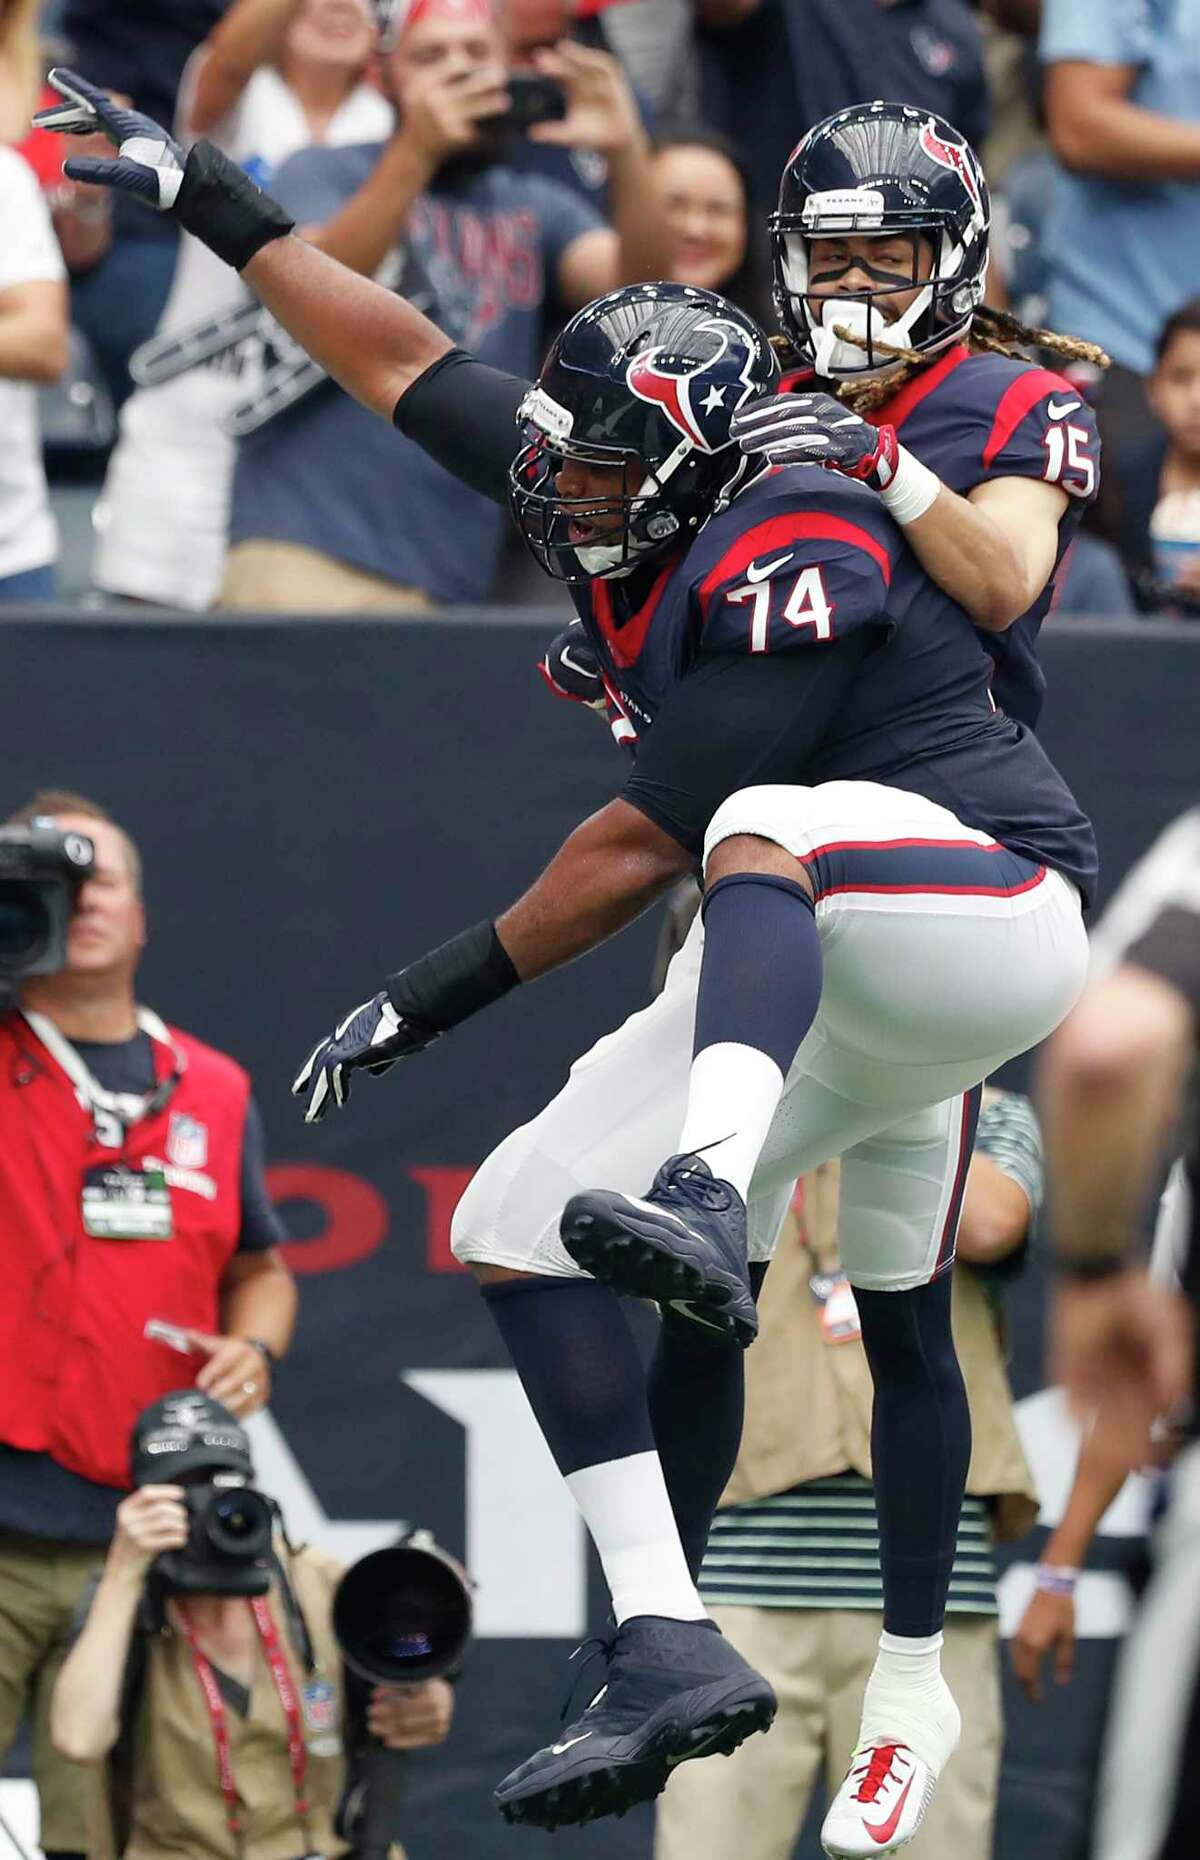 Houston Texans wide receiver Will Fuller (15) and tackle Chris Clark (74) celebrate Fuller's 16-yard touchdown reception against the Tennessee Titans during the second quarter of an NFL football game at NRG Stadium on Sunday, Oct. 1, 2017, in Houston.